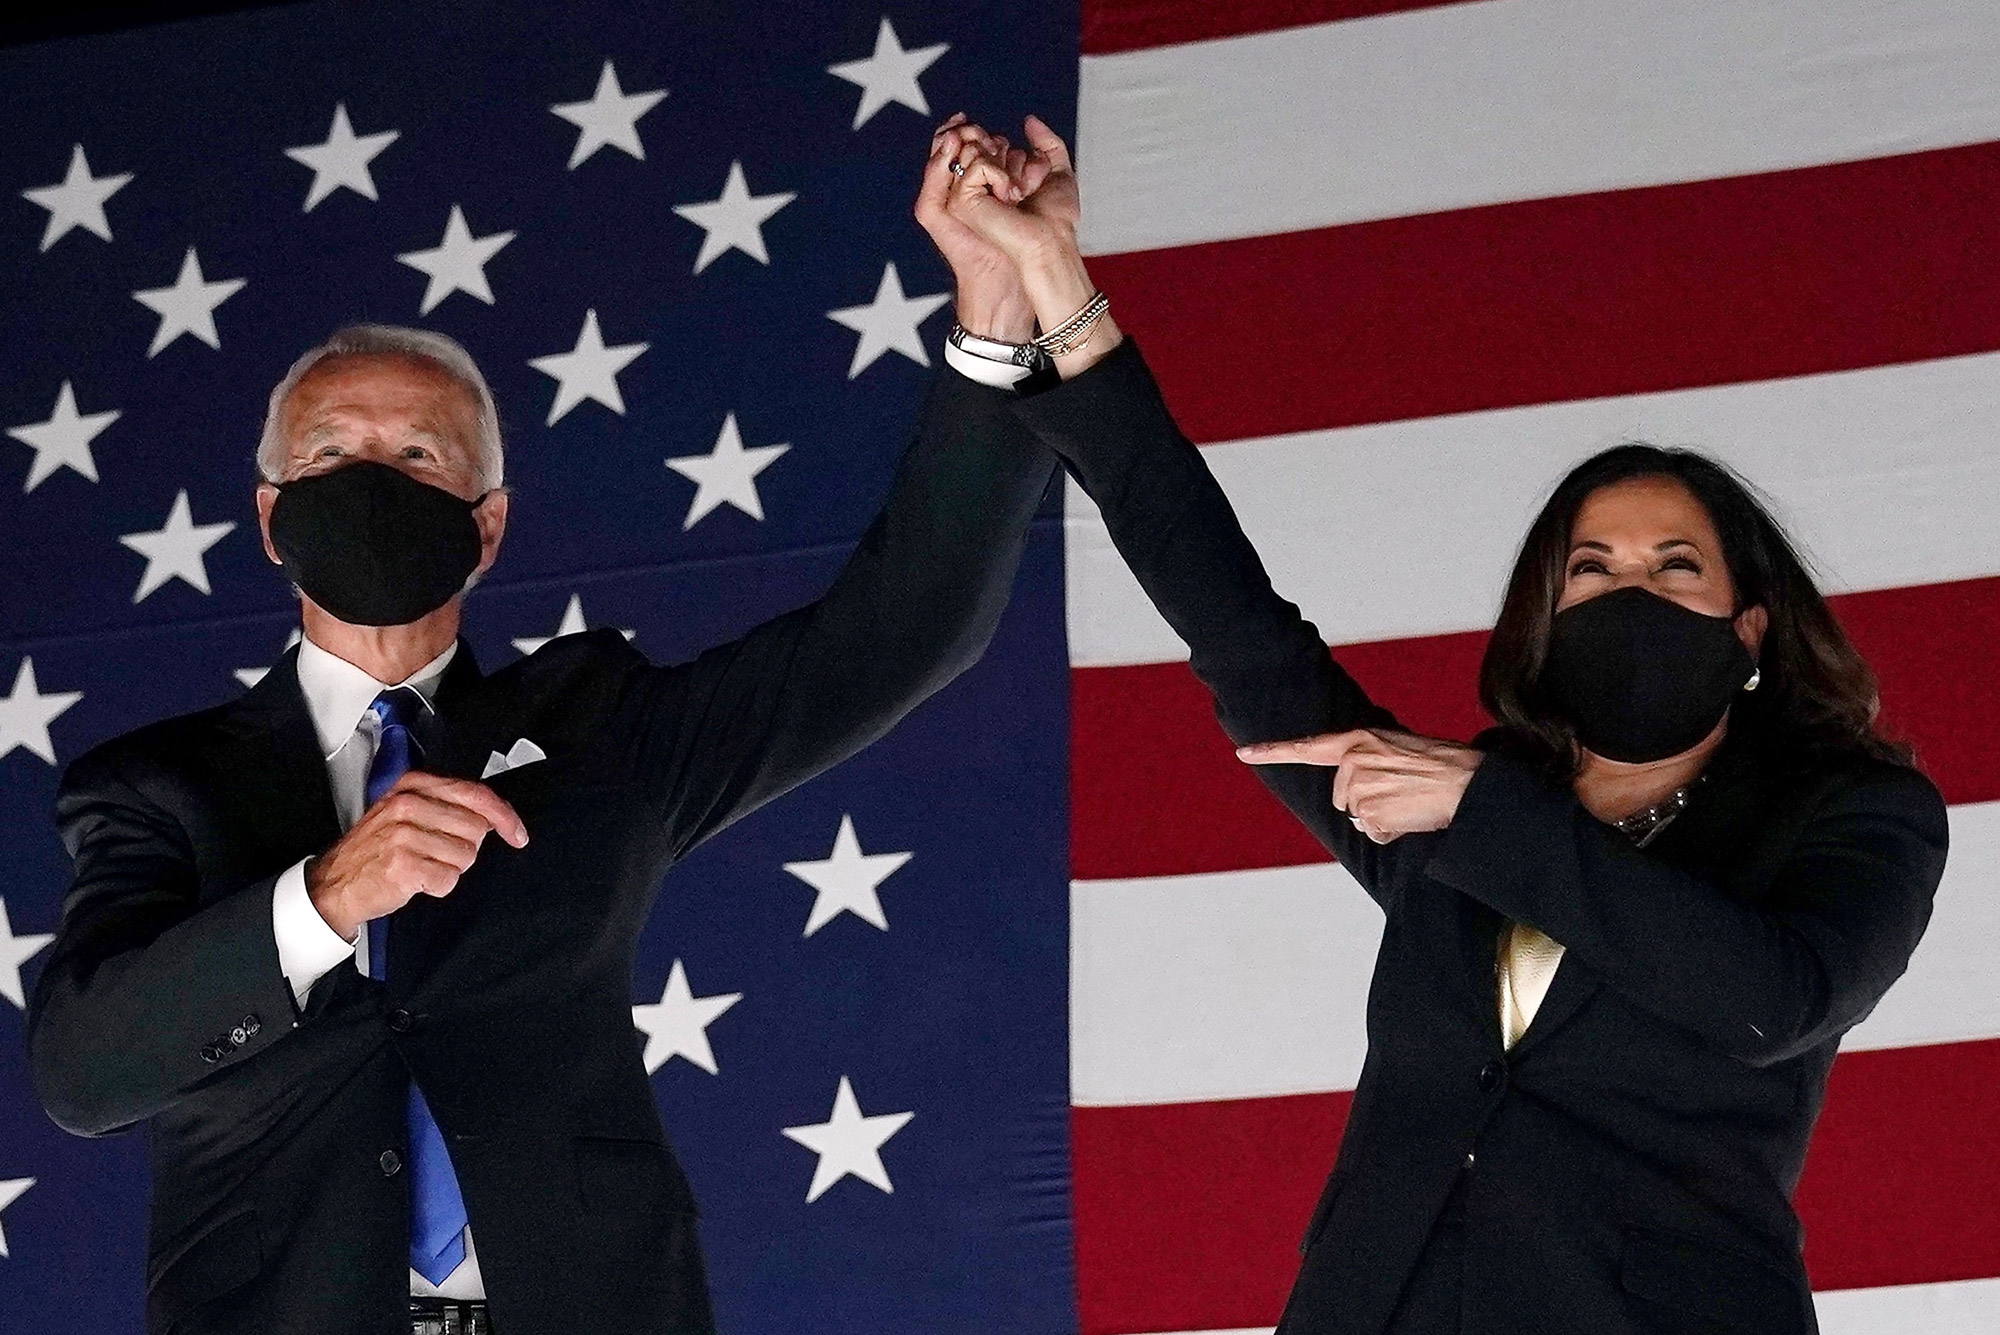 A photo of president-elect Joe Biden and Vice President-elect Kamala Harris clasping hands and raising them above their heads. They are standing in front of an American flag. Both are wearing masks.